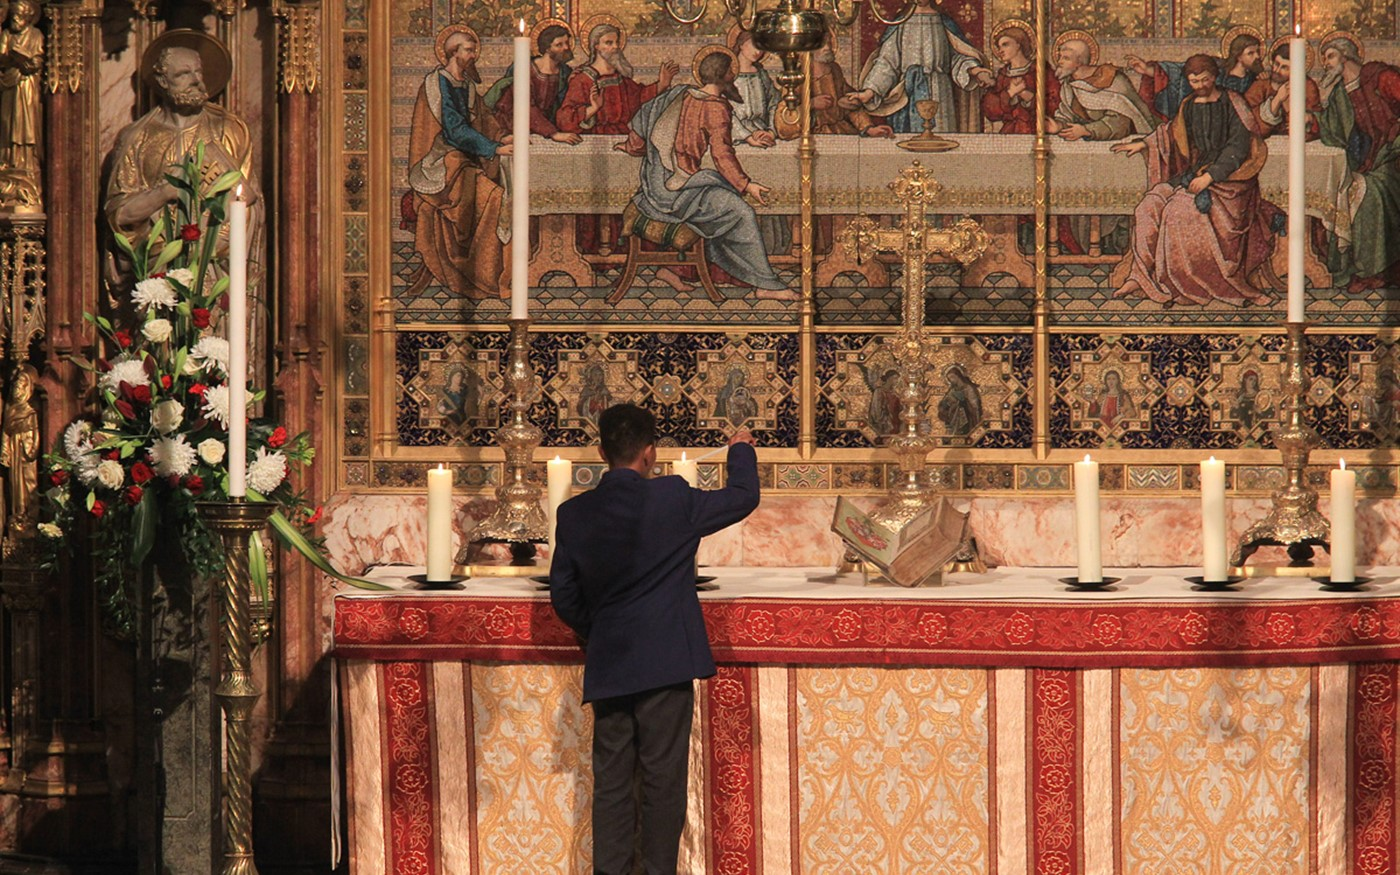 Children representing the Lutheran, Roman Catholic and Anglican Churches light candles at the High Altar